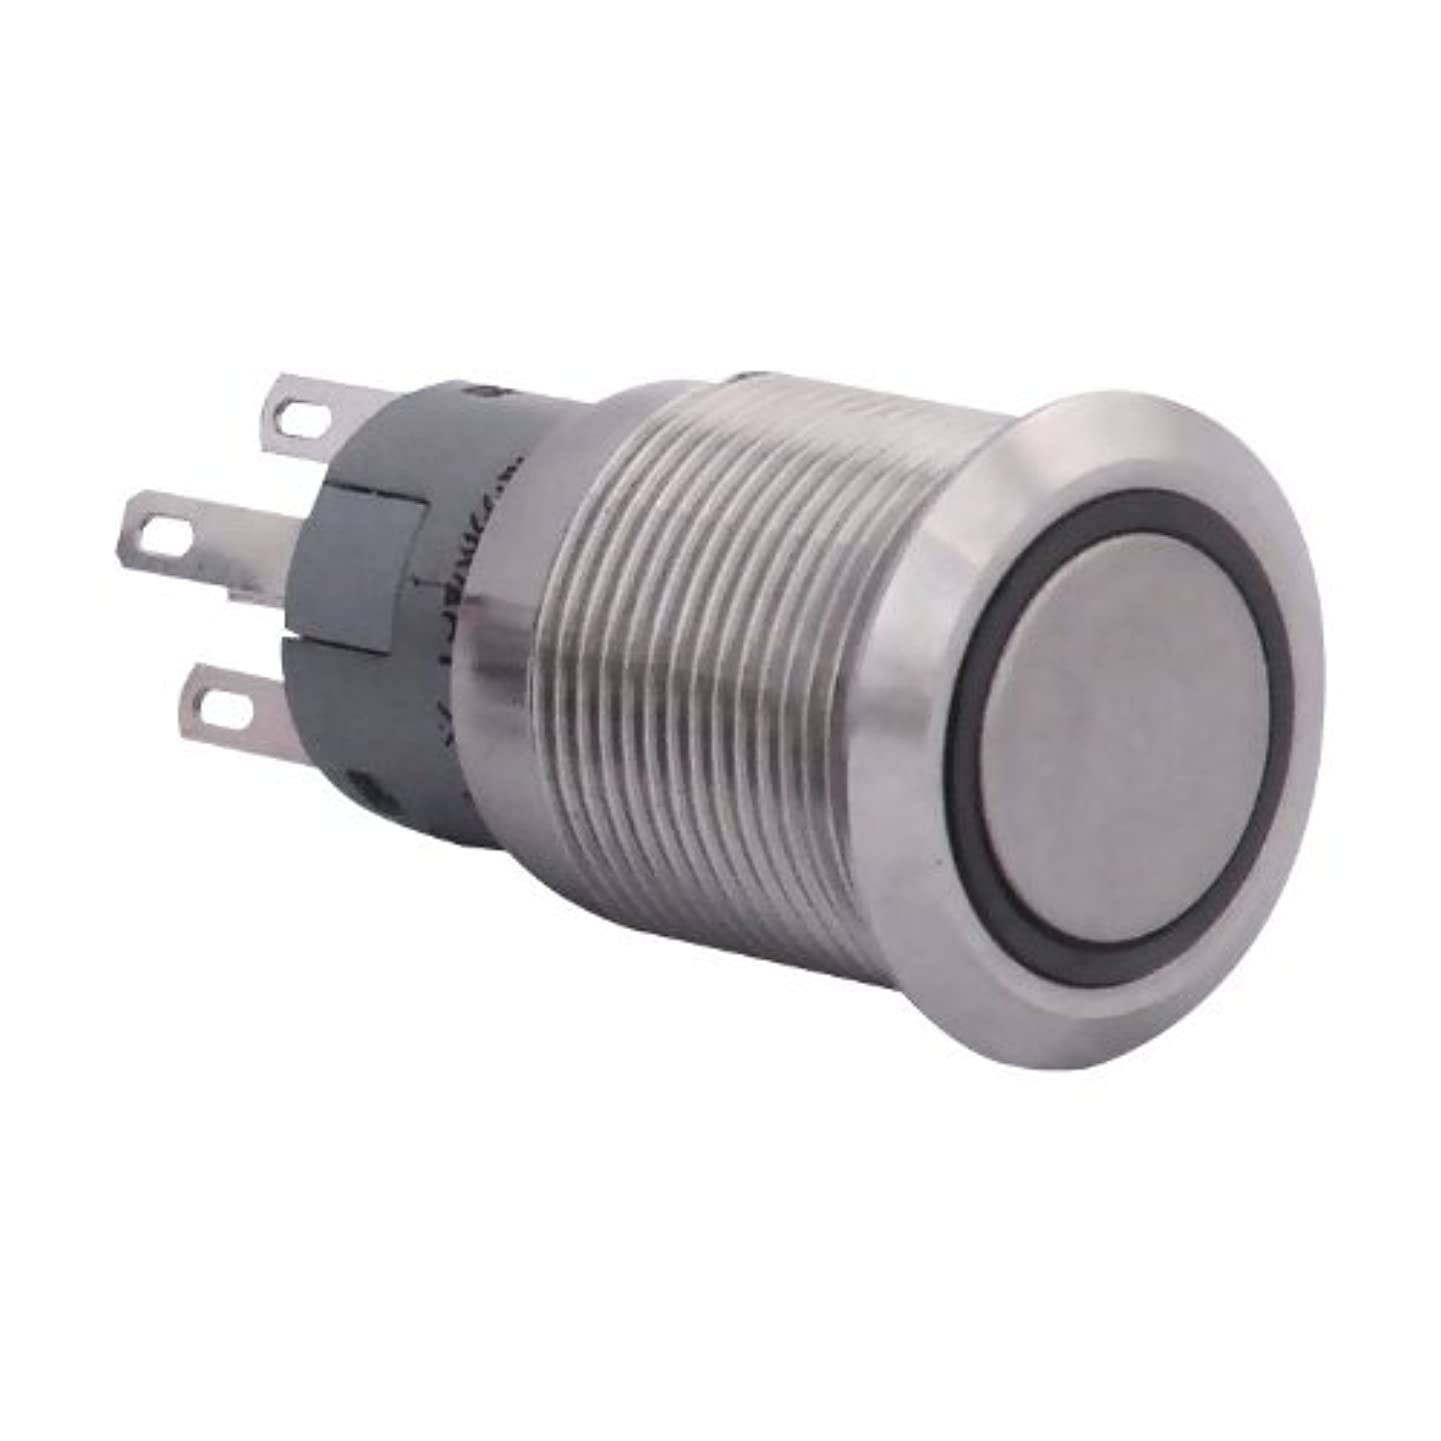 Plasmaglow 11015 White Stainless Steel LED Activator Switch (On/Off Version)